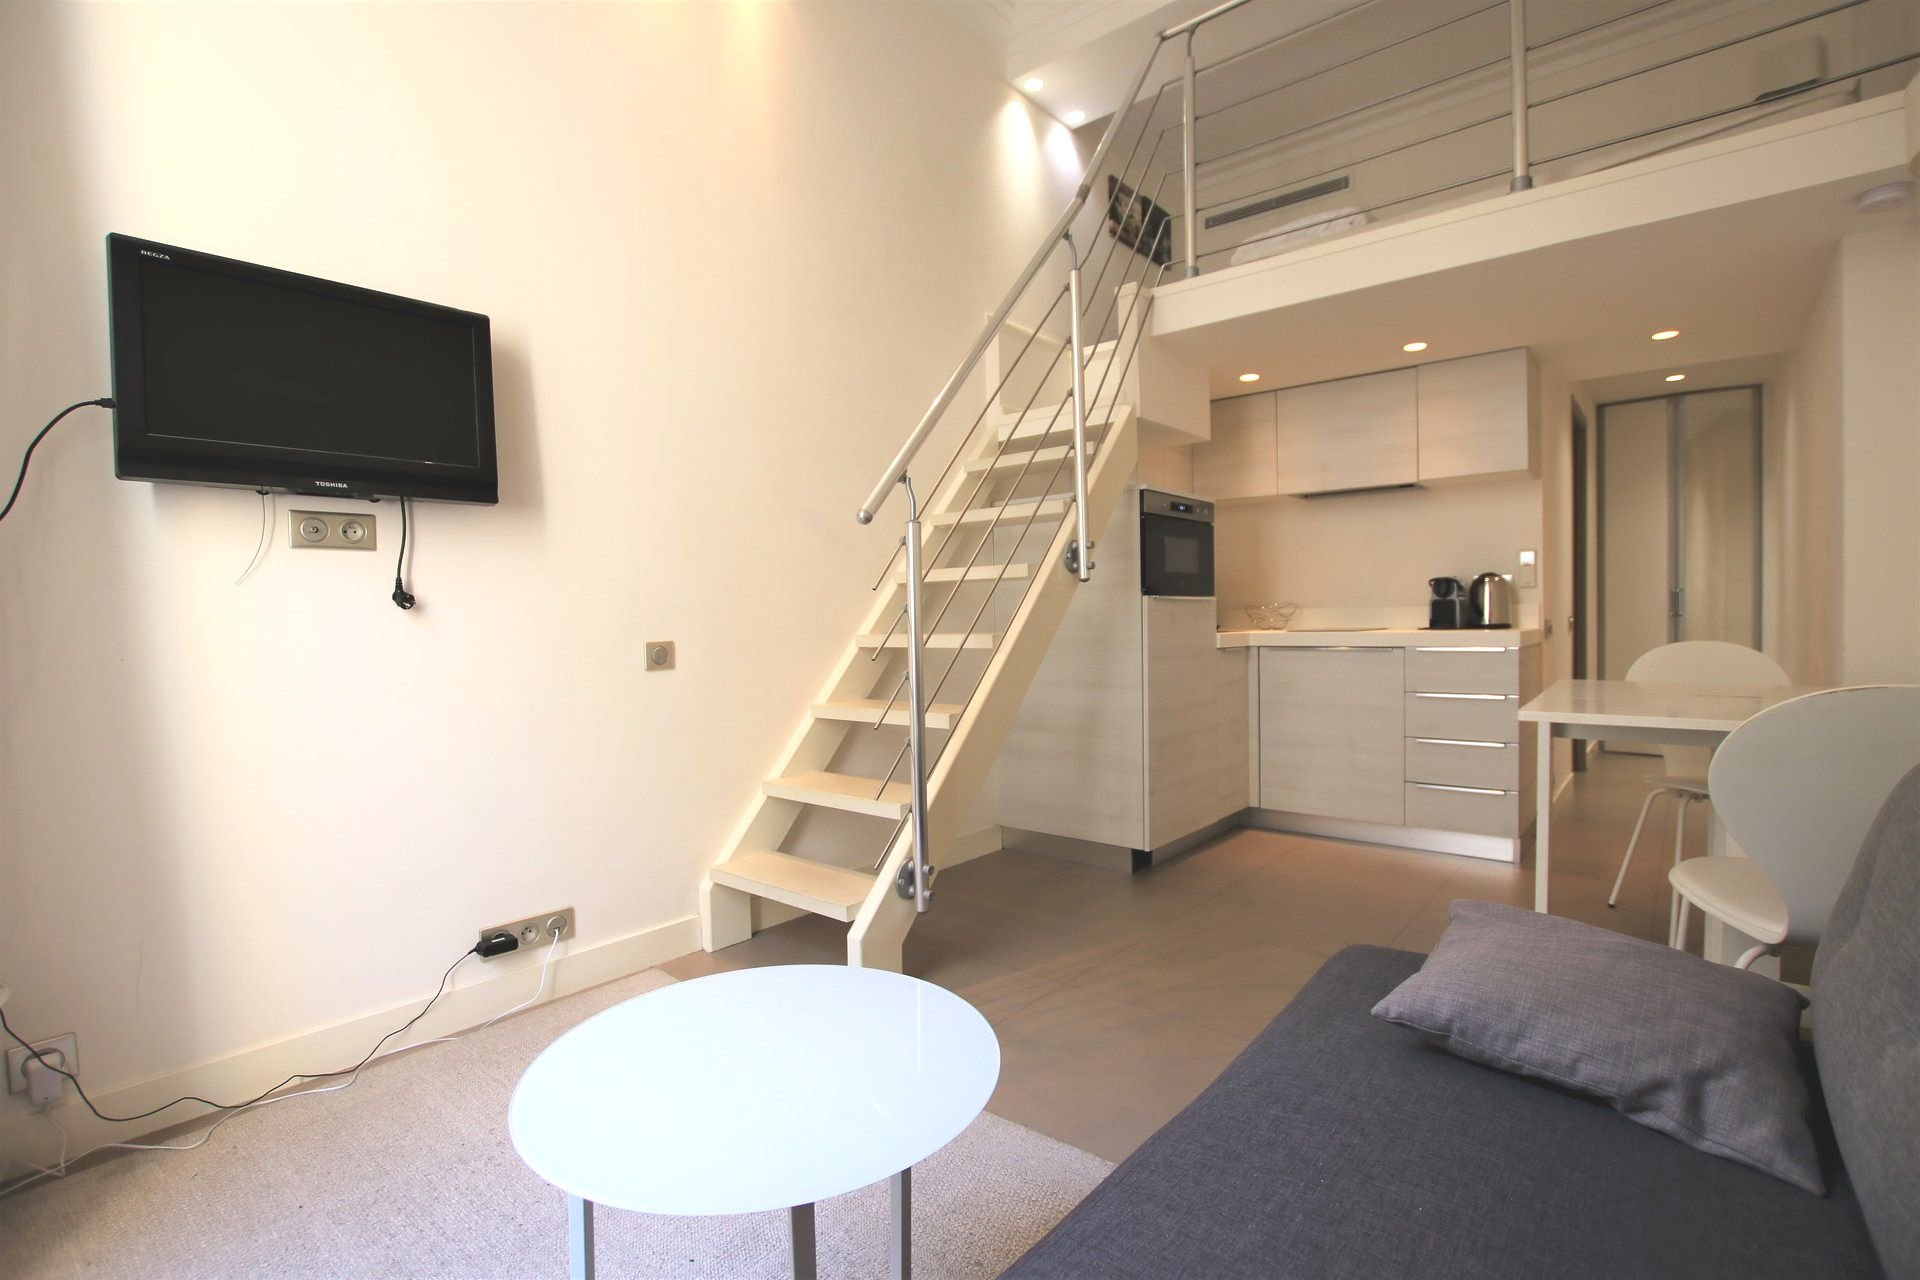 Location Appartement - Nice Carré d'or